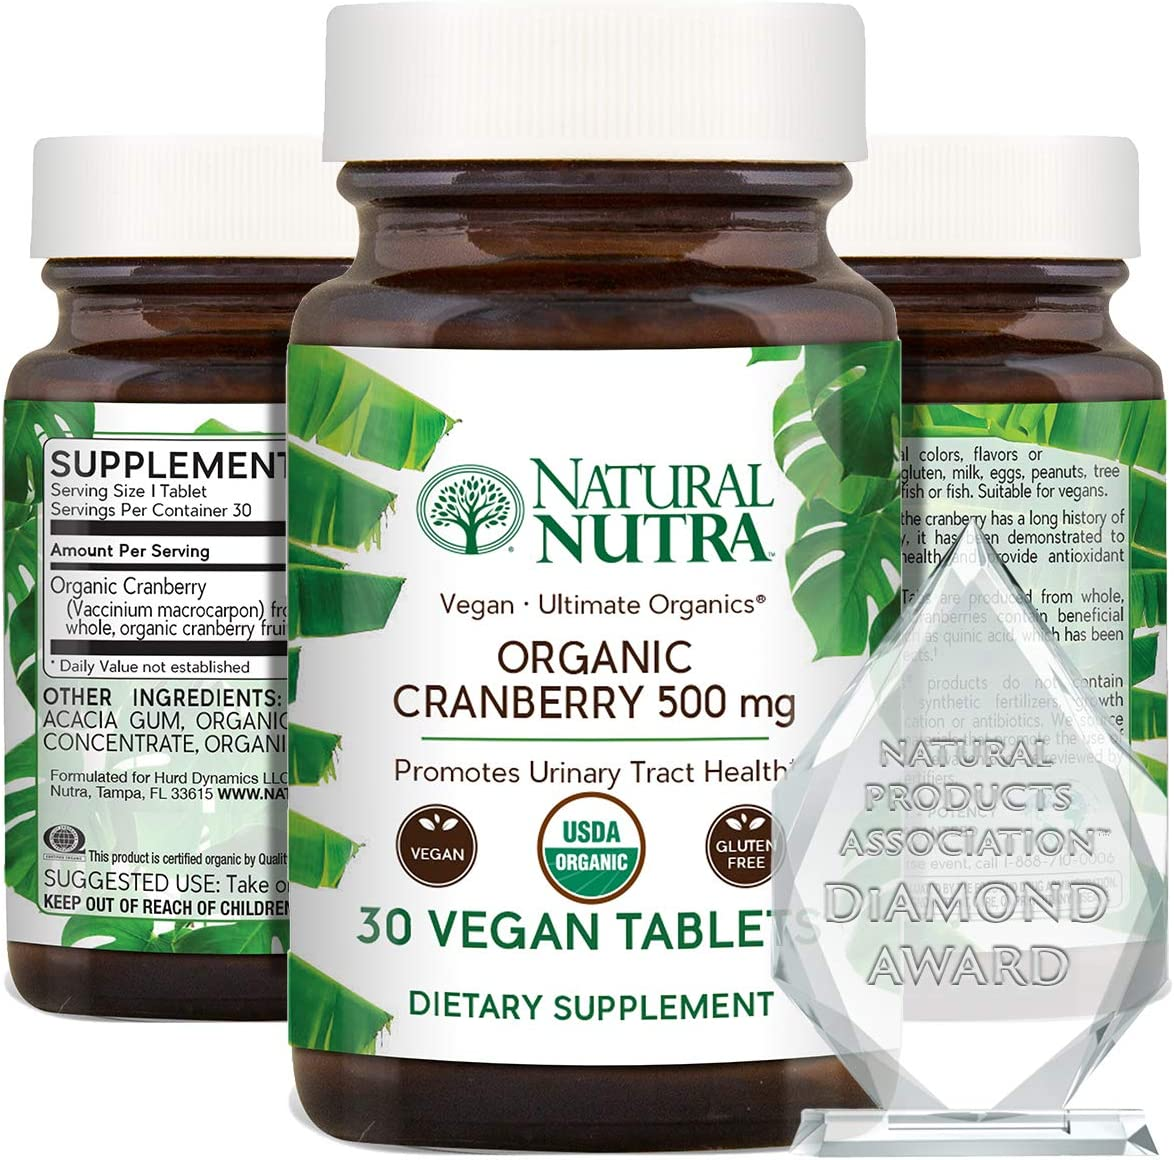 Natural Nutra Organic Cranberry Extract Supplement